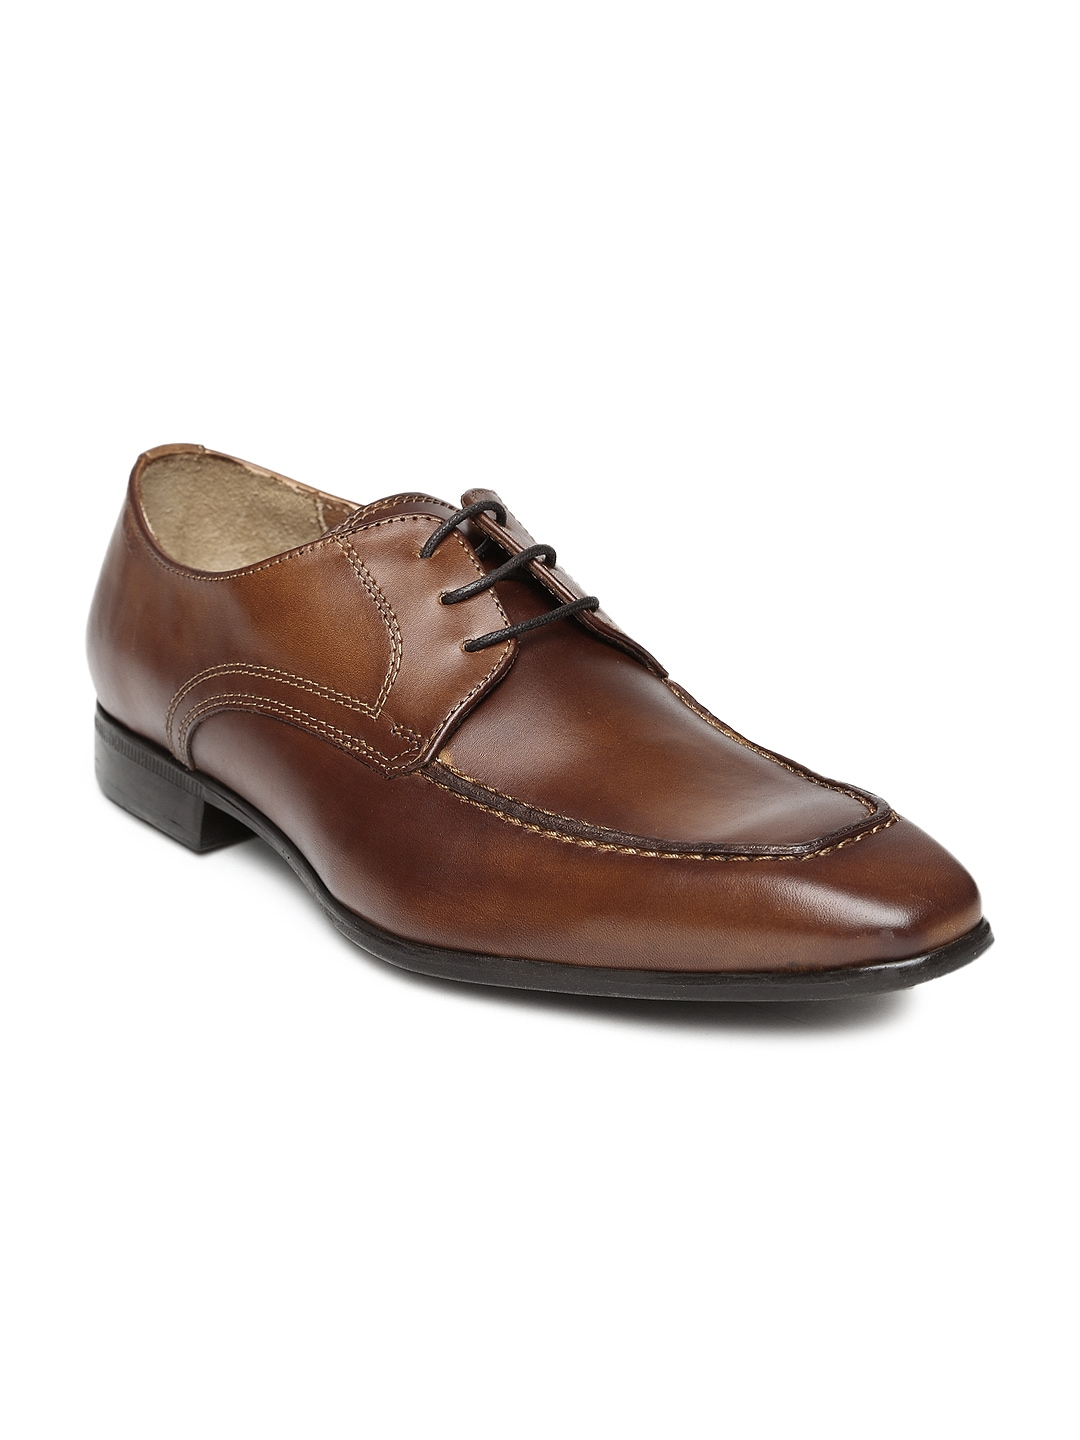 Ruosh Occasion Men Tan Brown Leather Derby Shoes